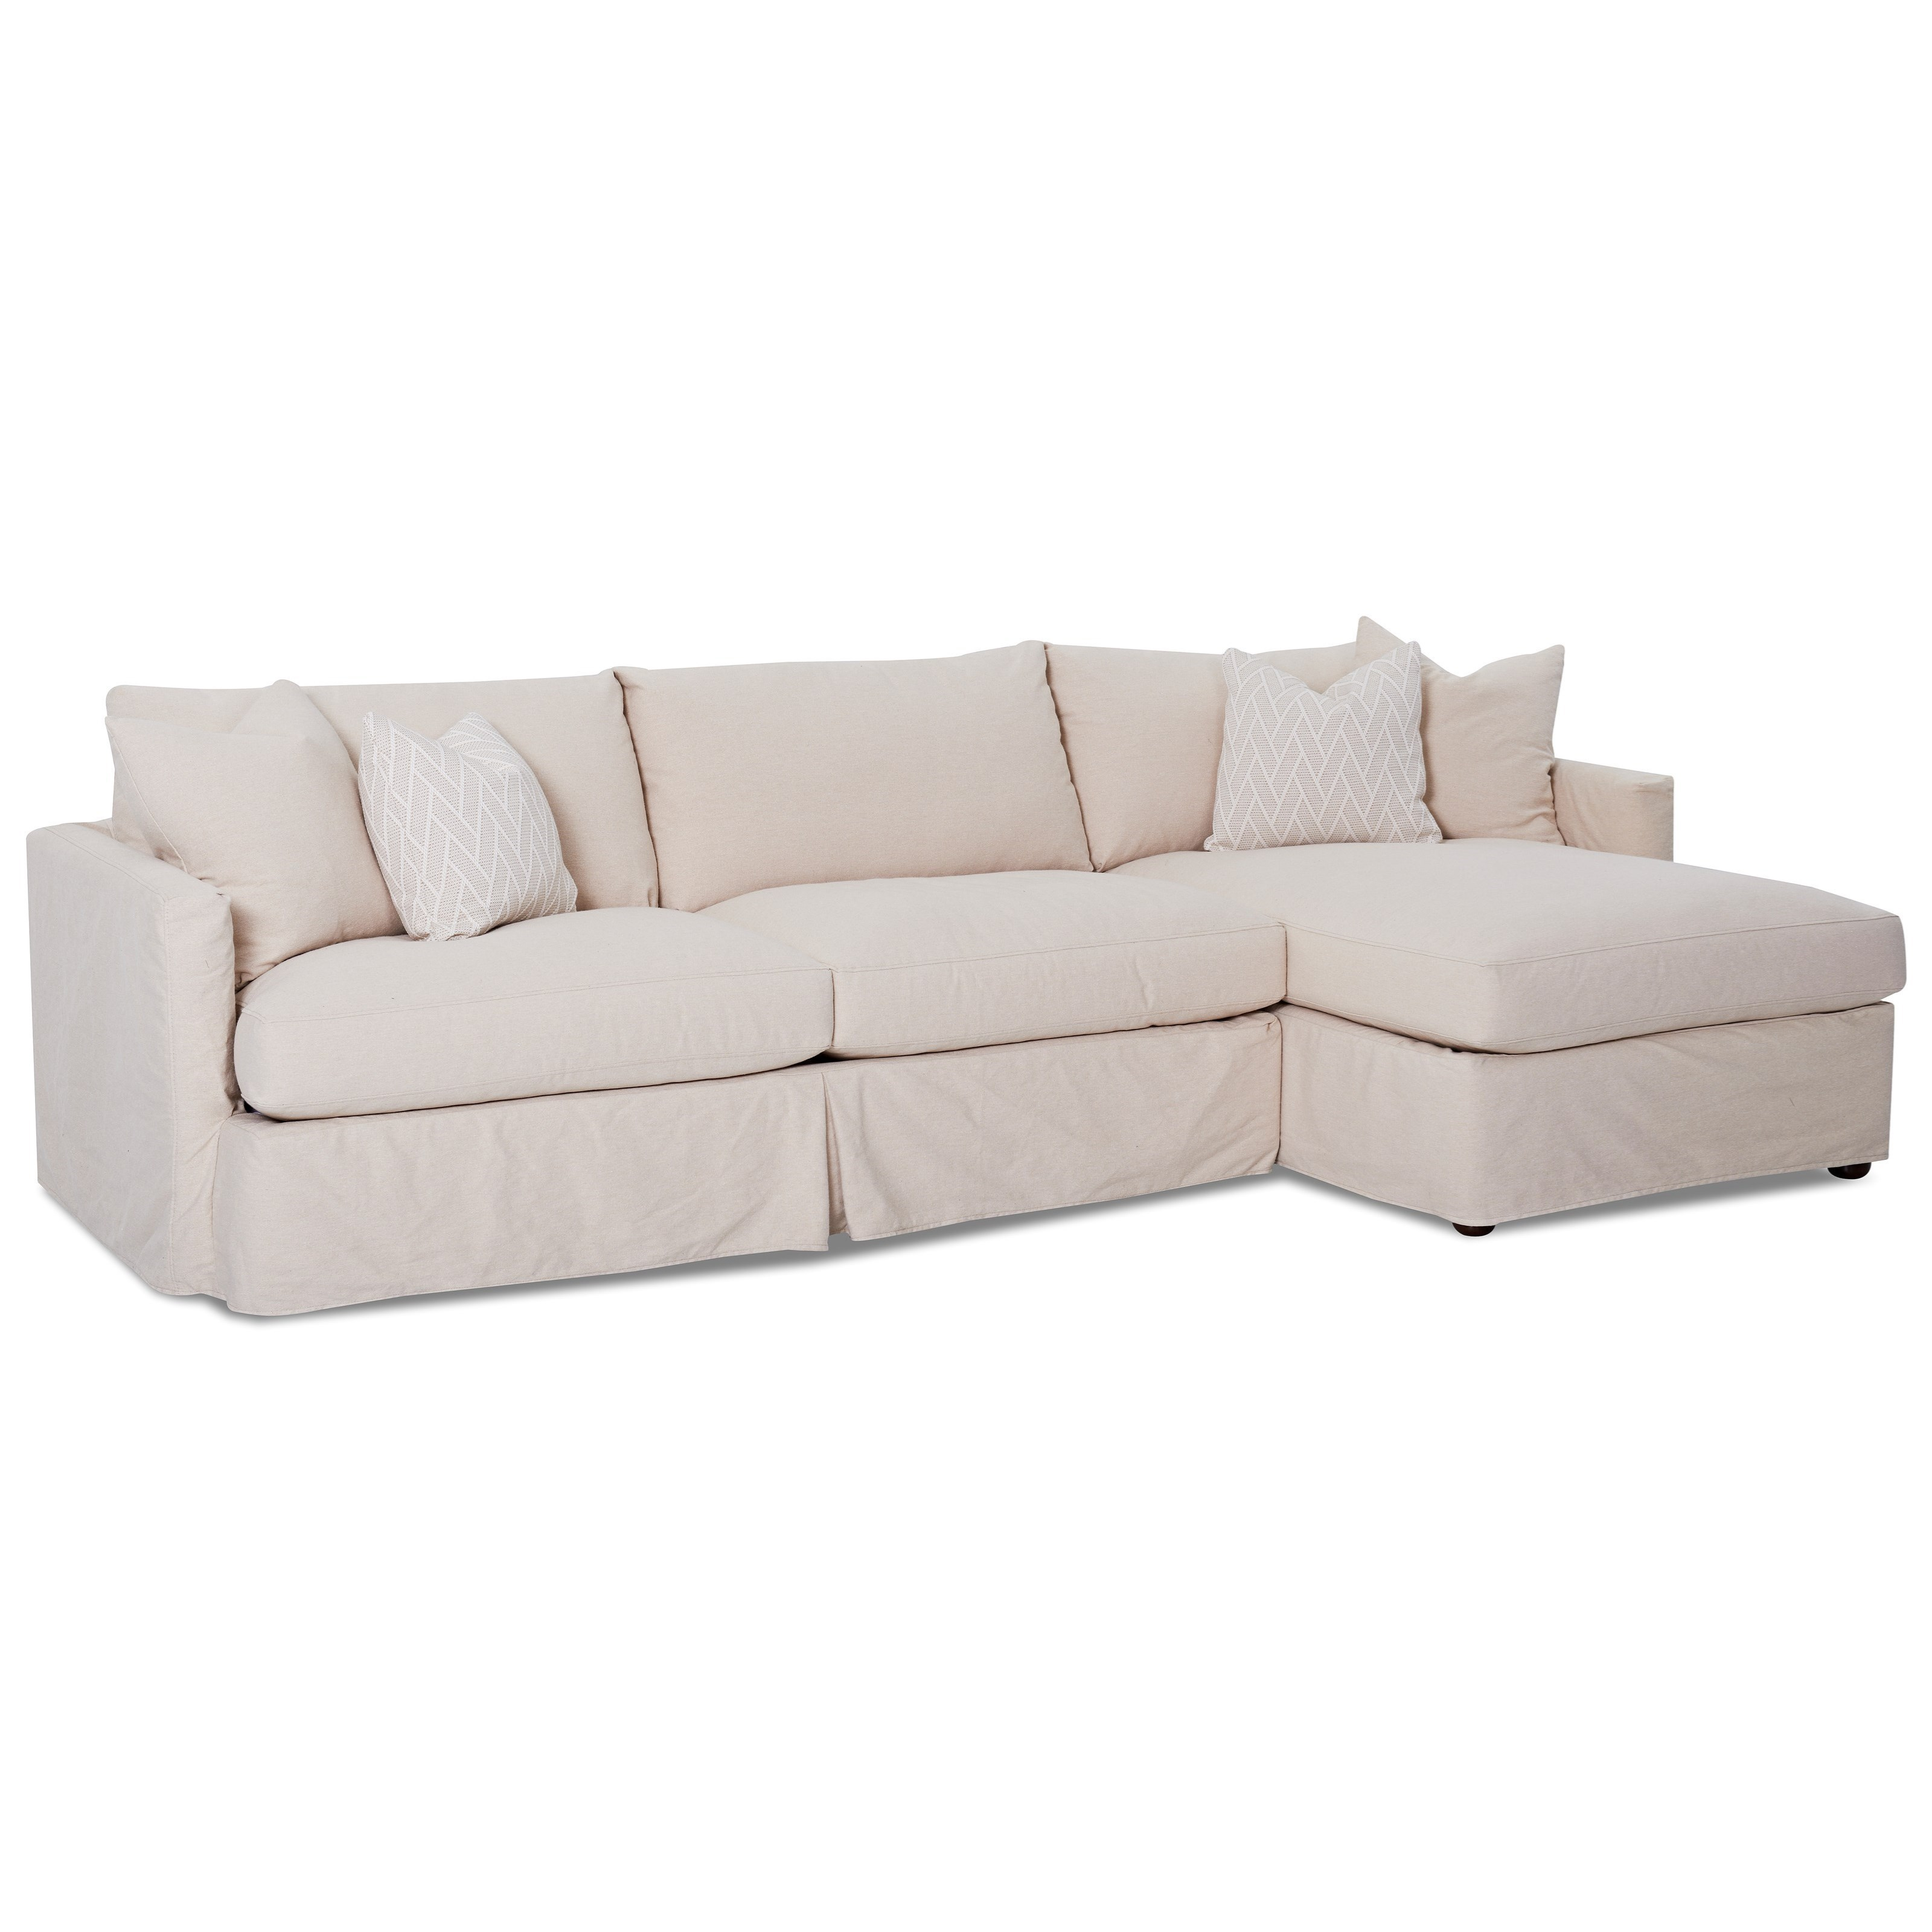 2 pc sectional sofa with slipcover